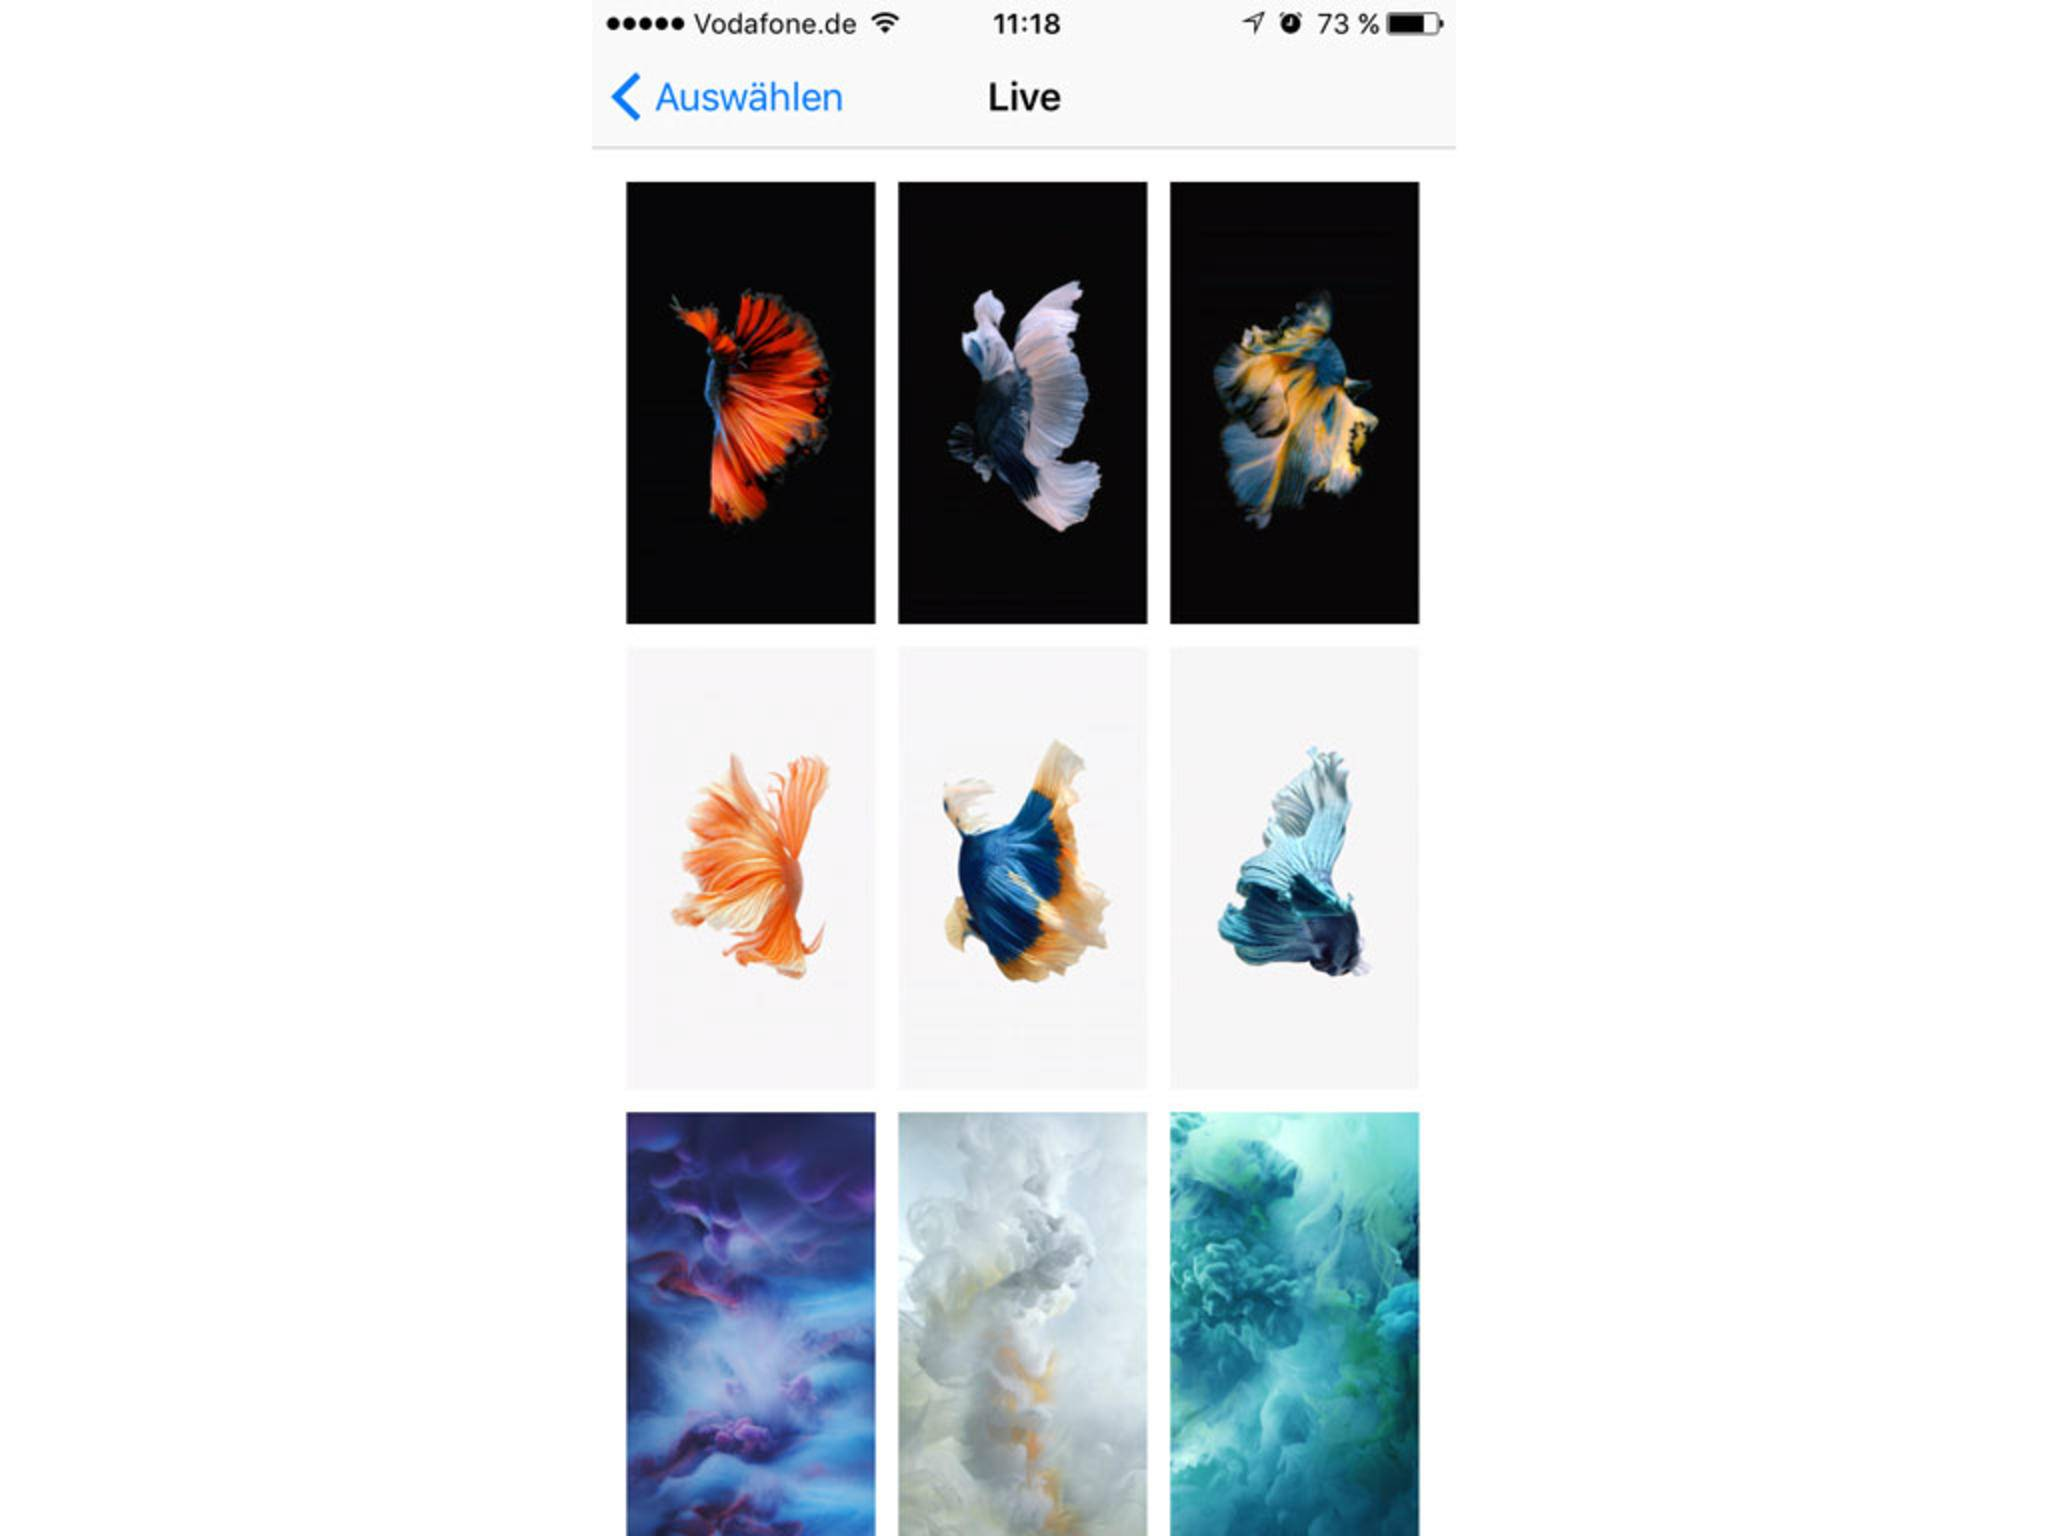 how to turn on live photos